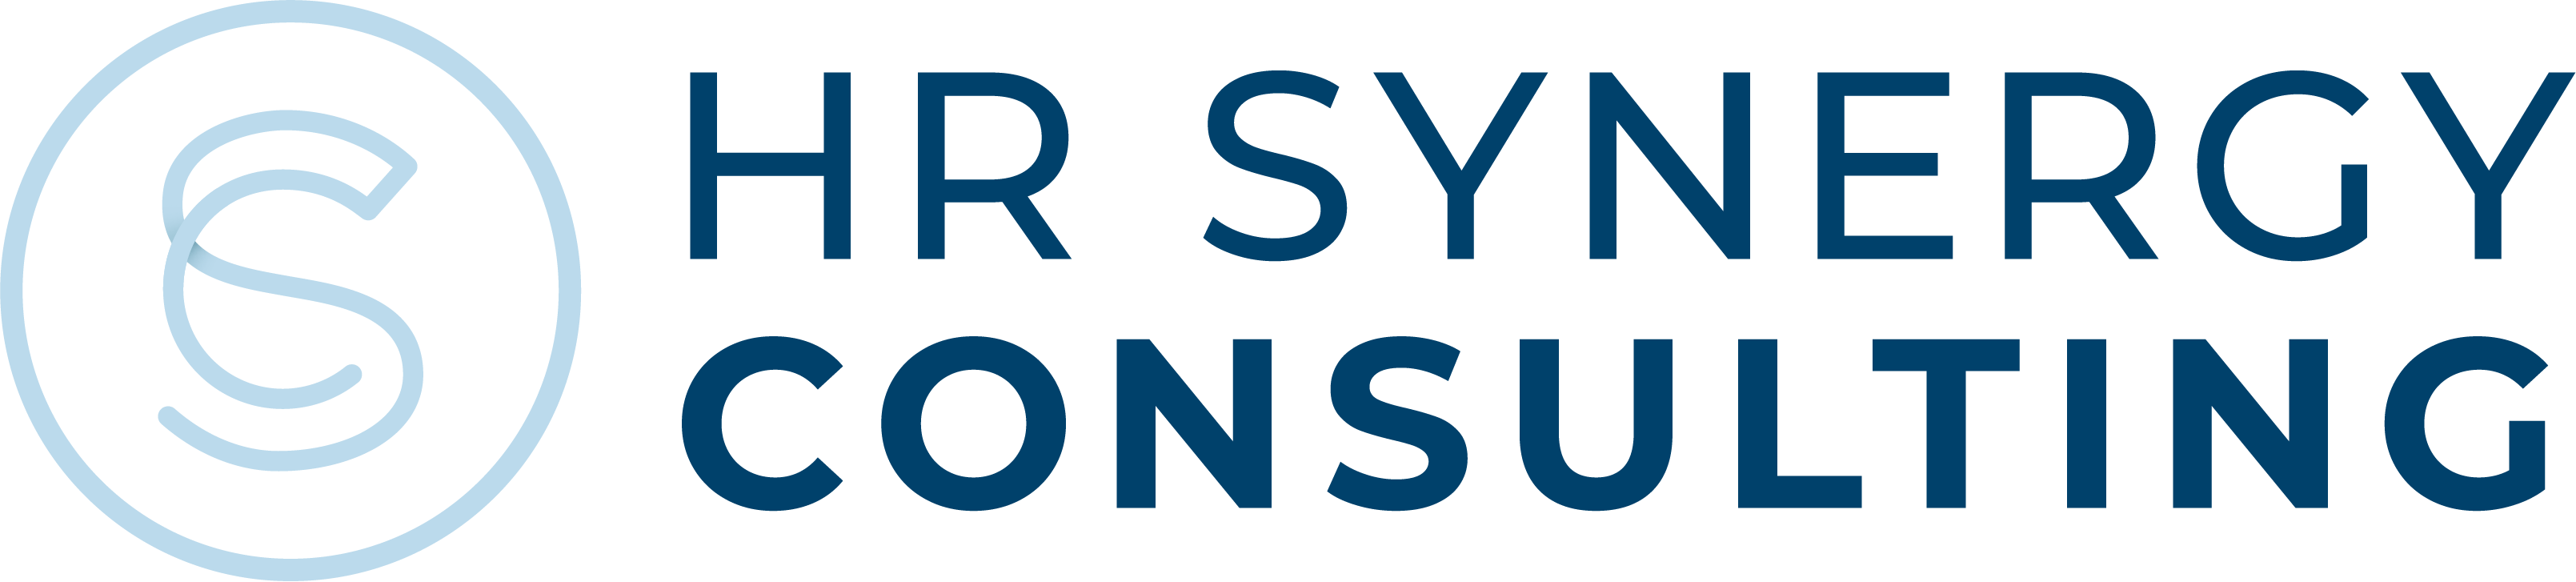 HR Synergy Consulting